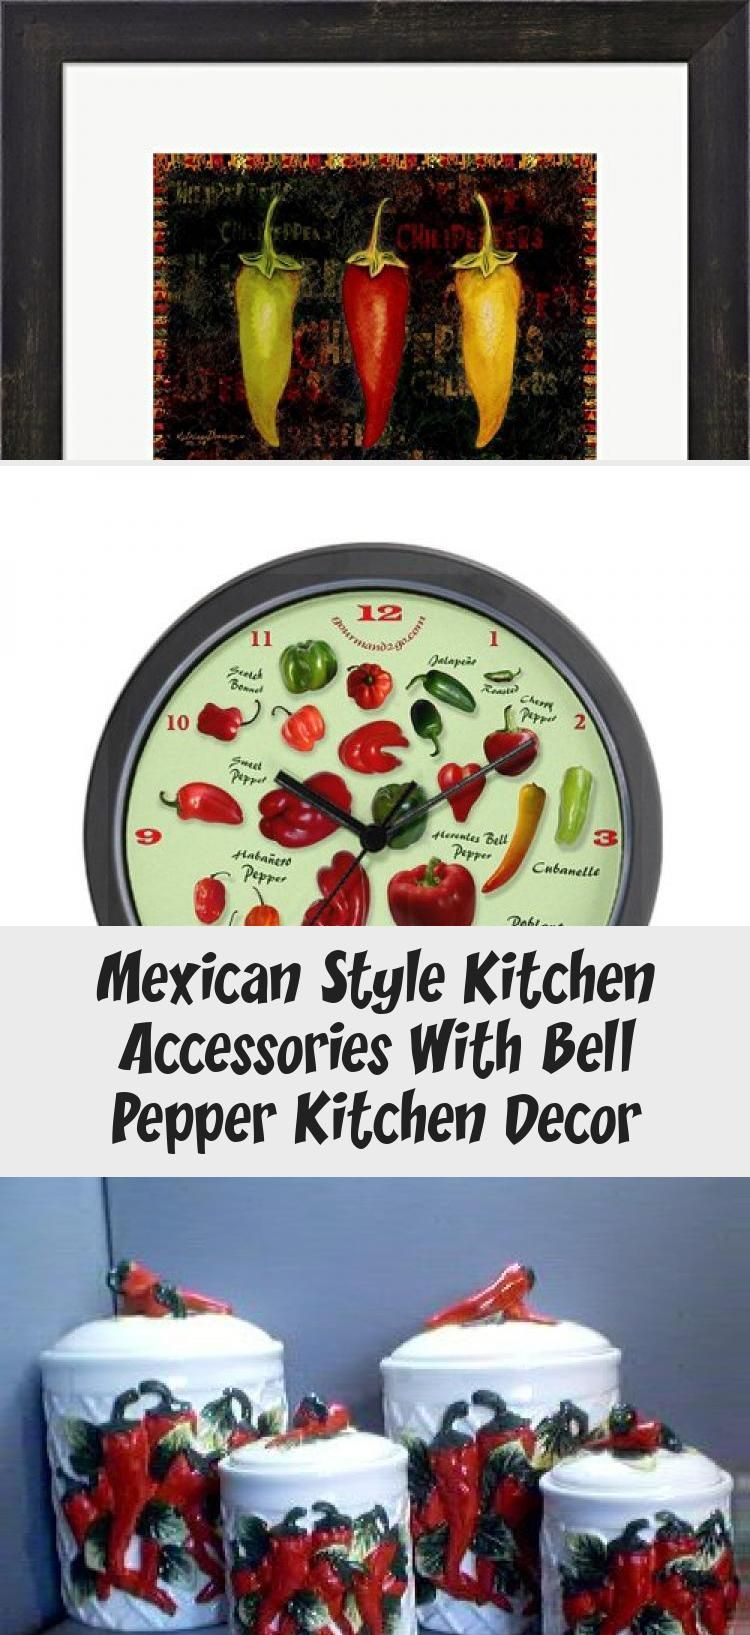 Mexican Style Kitchen Accessories With Bell Pepper Kitchen Decor Kitchen In 2020 Mexican Style Kitchens Kitchen Accessories Kitchen Styling